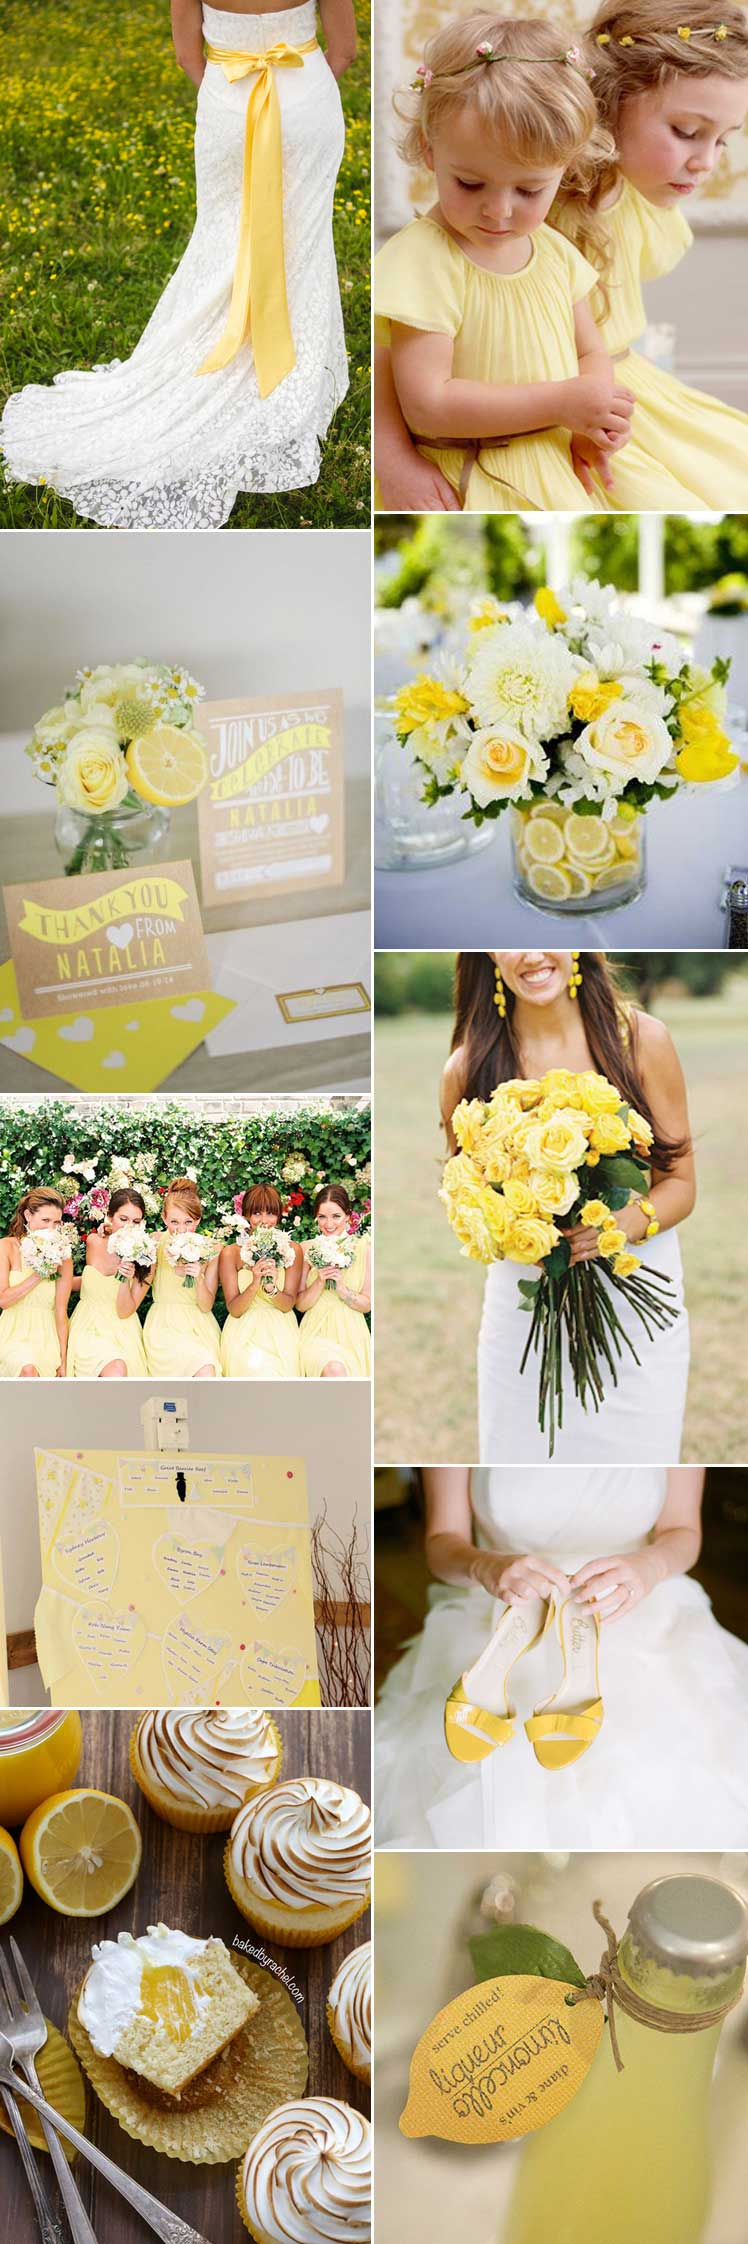 embrace a vibrant lemon sorbet wedding theme